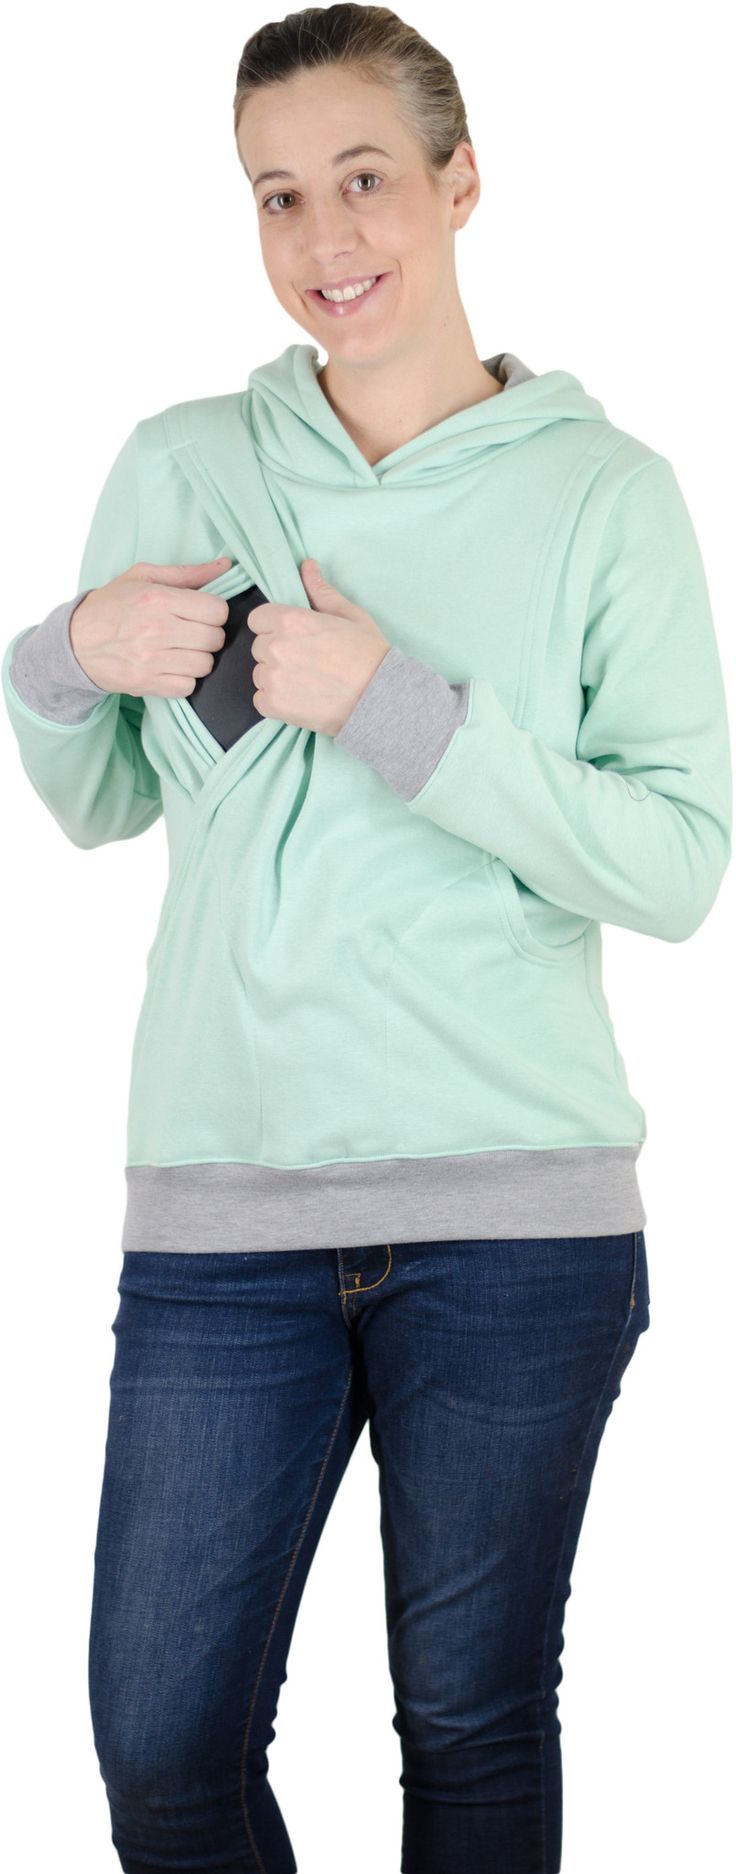 The Latched Mama Hoodie, for breastfeeding moms